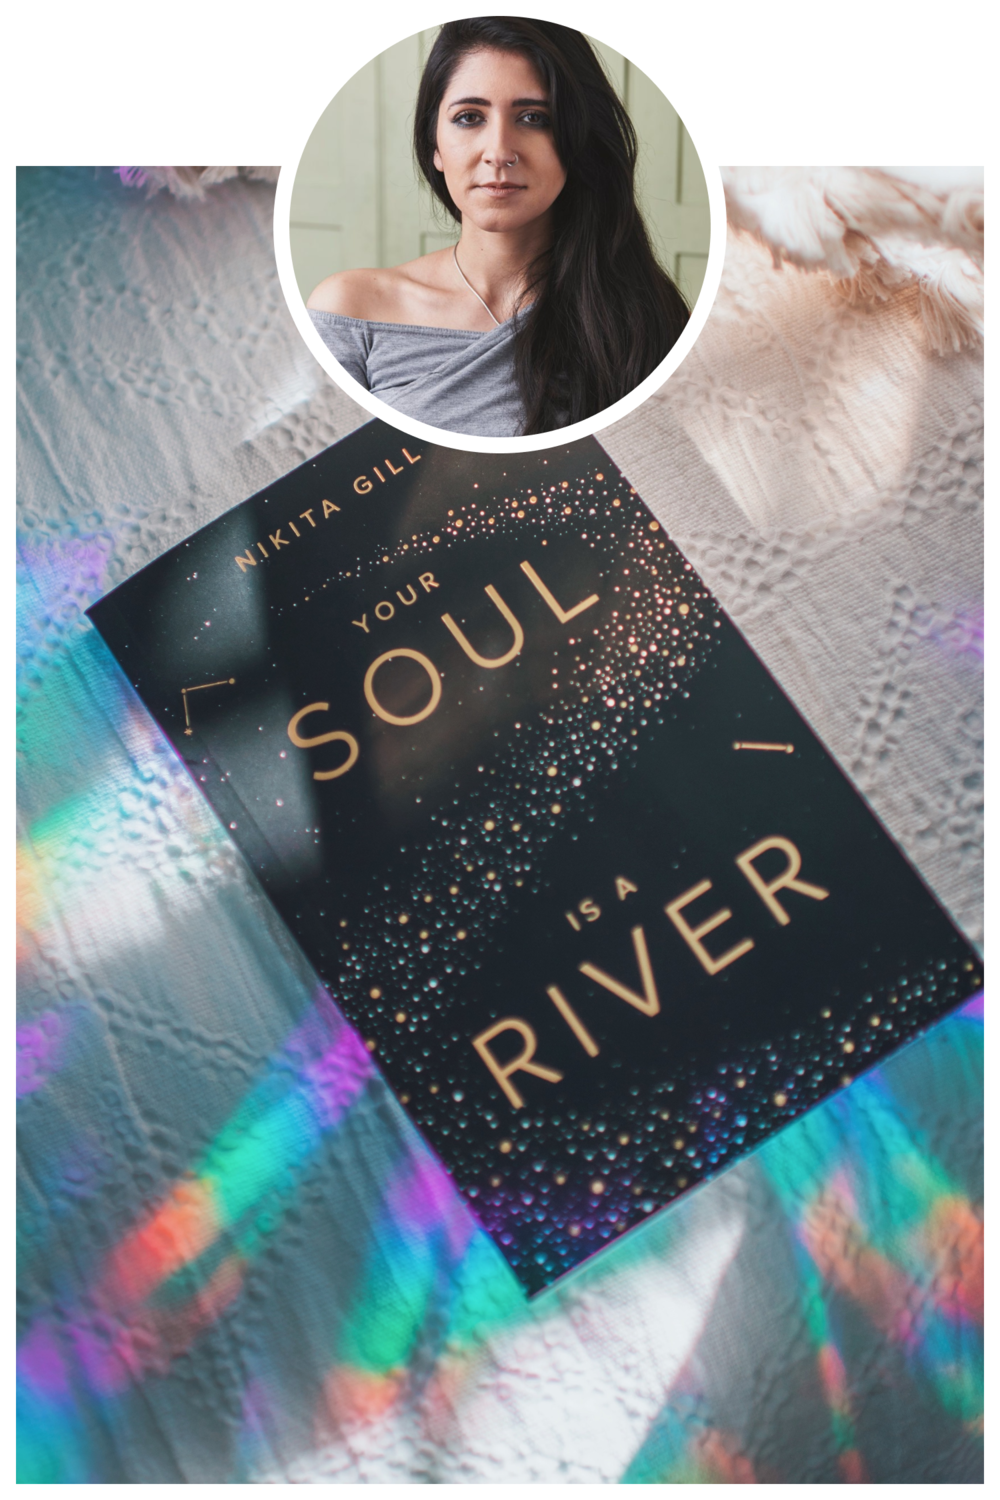 Your Soul is a River by Nikita Gill